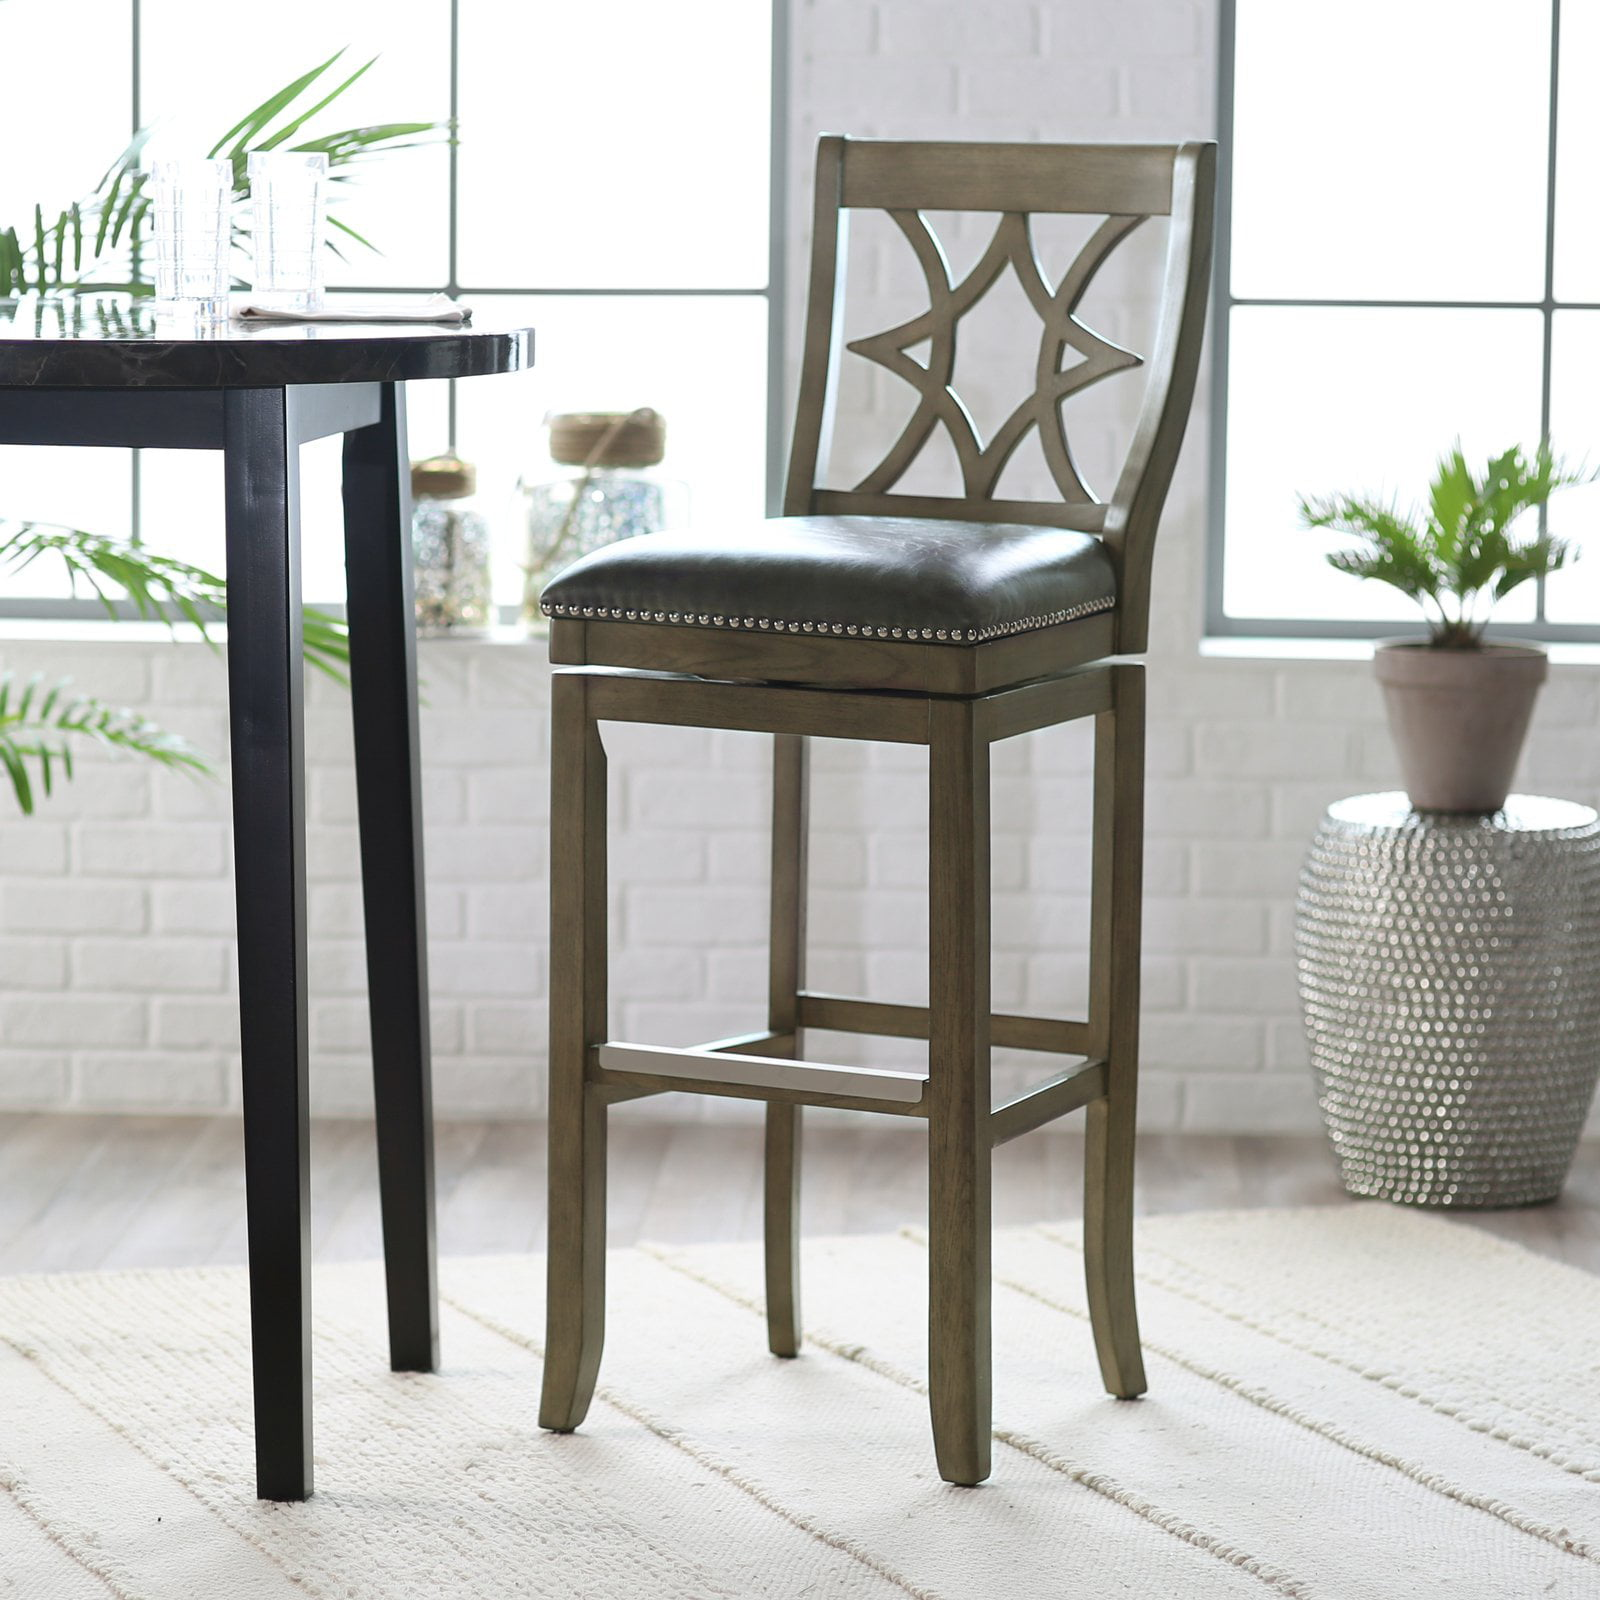 extra tall bar stools Belham Living Oliver Square Seat Swivel Extra Tall Bar Stool  extra tall bar stools